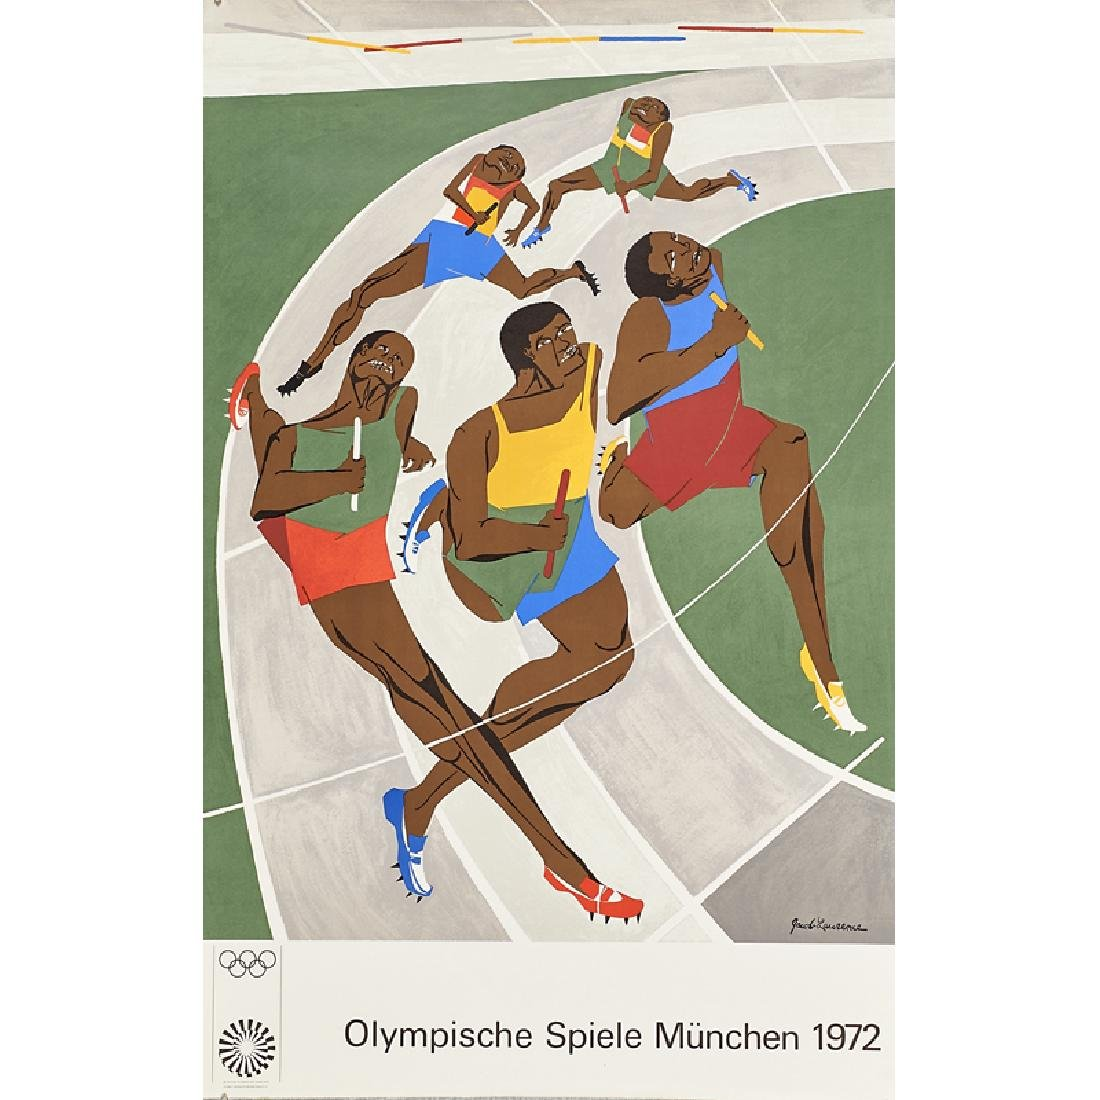 1972 MUNICH OLYMPIC POSTERS - 2